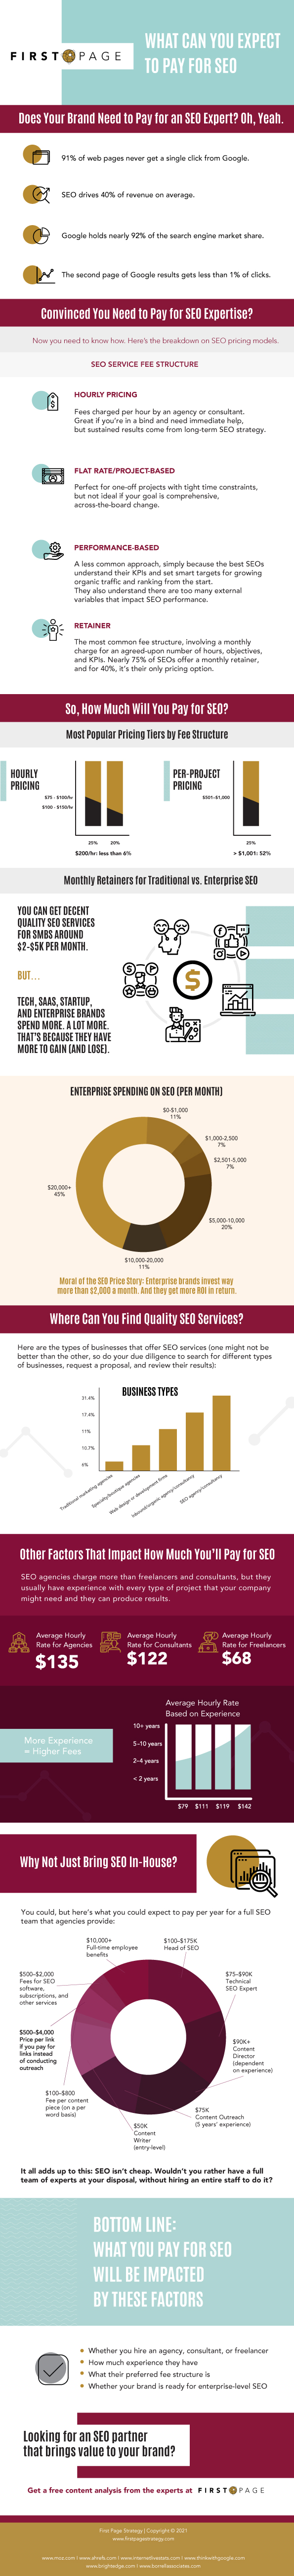 Infographic about What Can You Expect to Pay for SEO